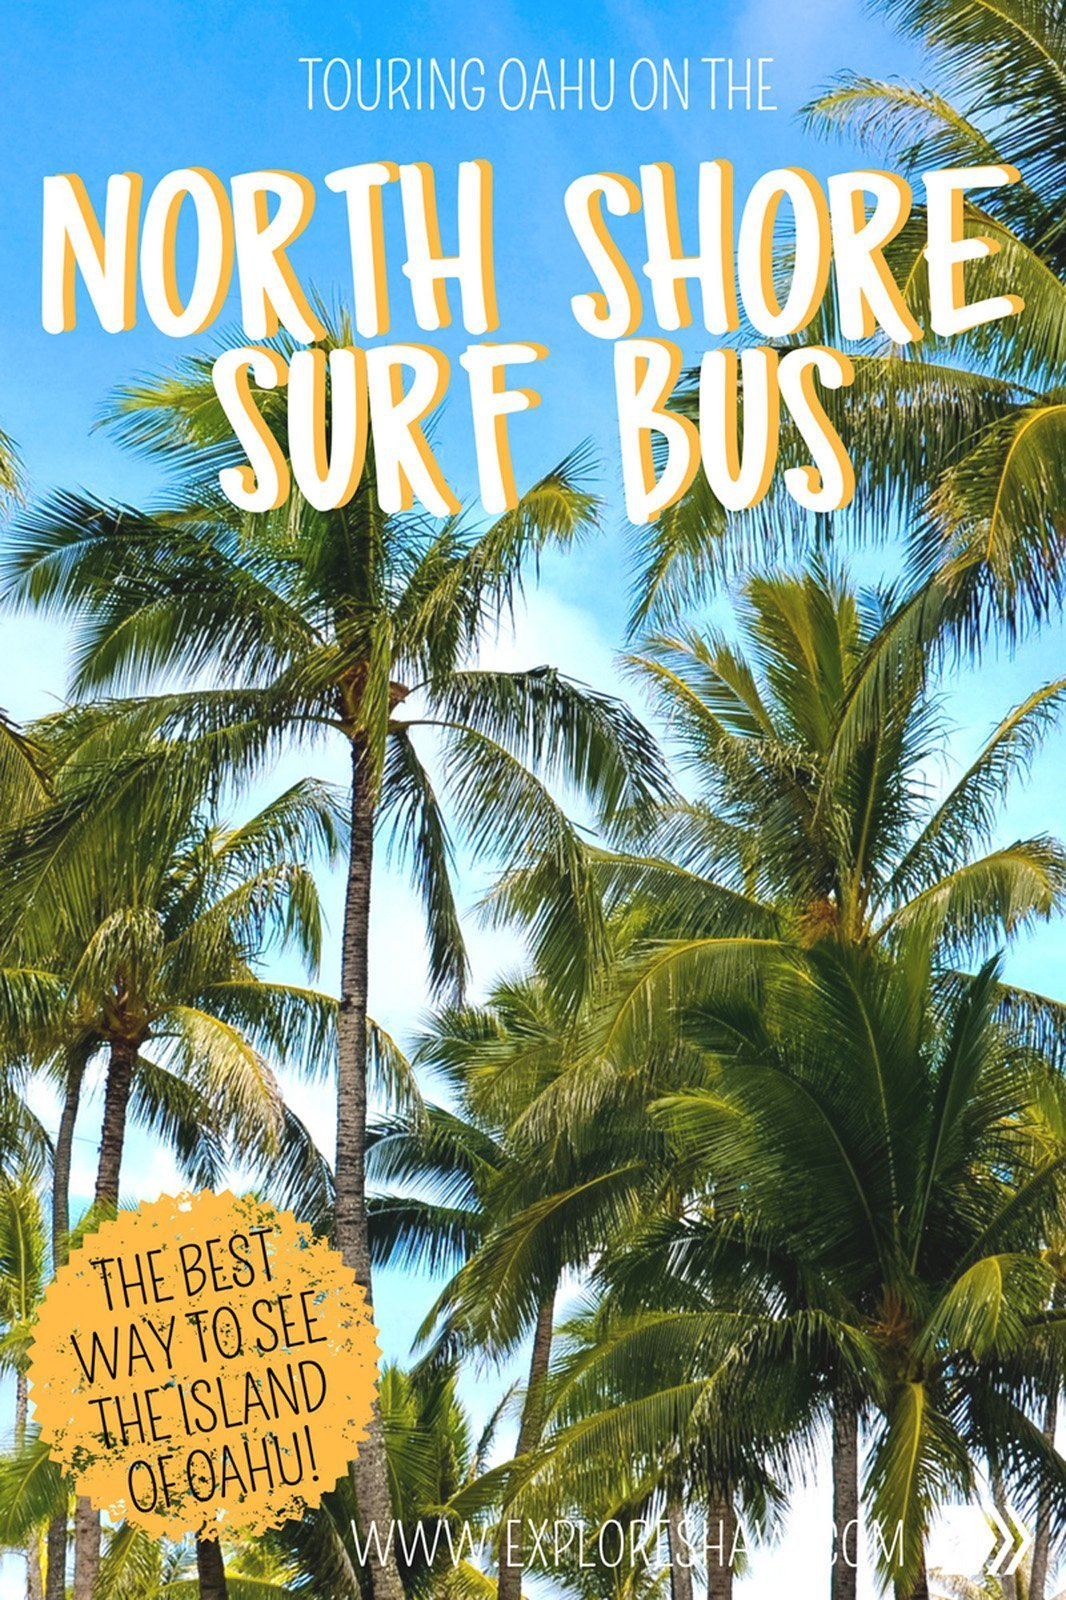 THE NORTH SHORE SURF BUS